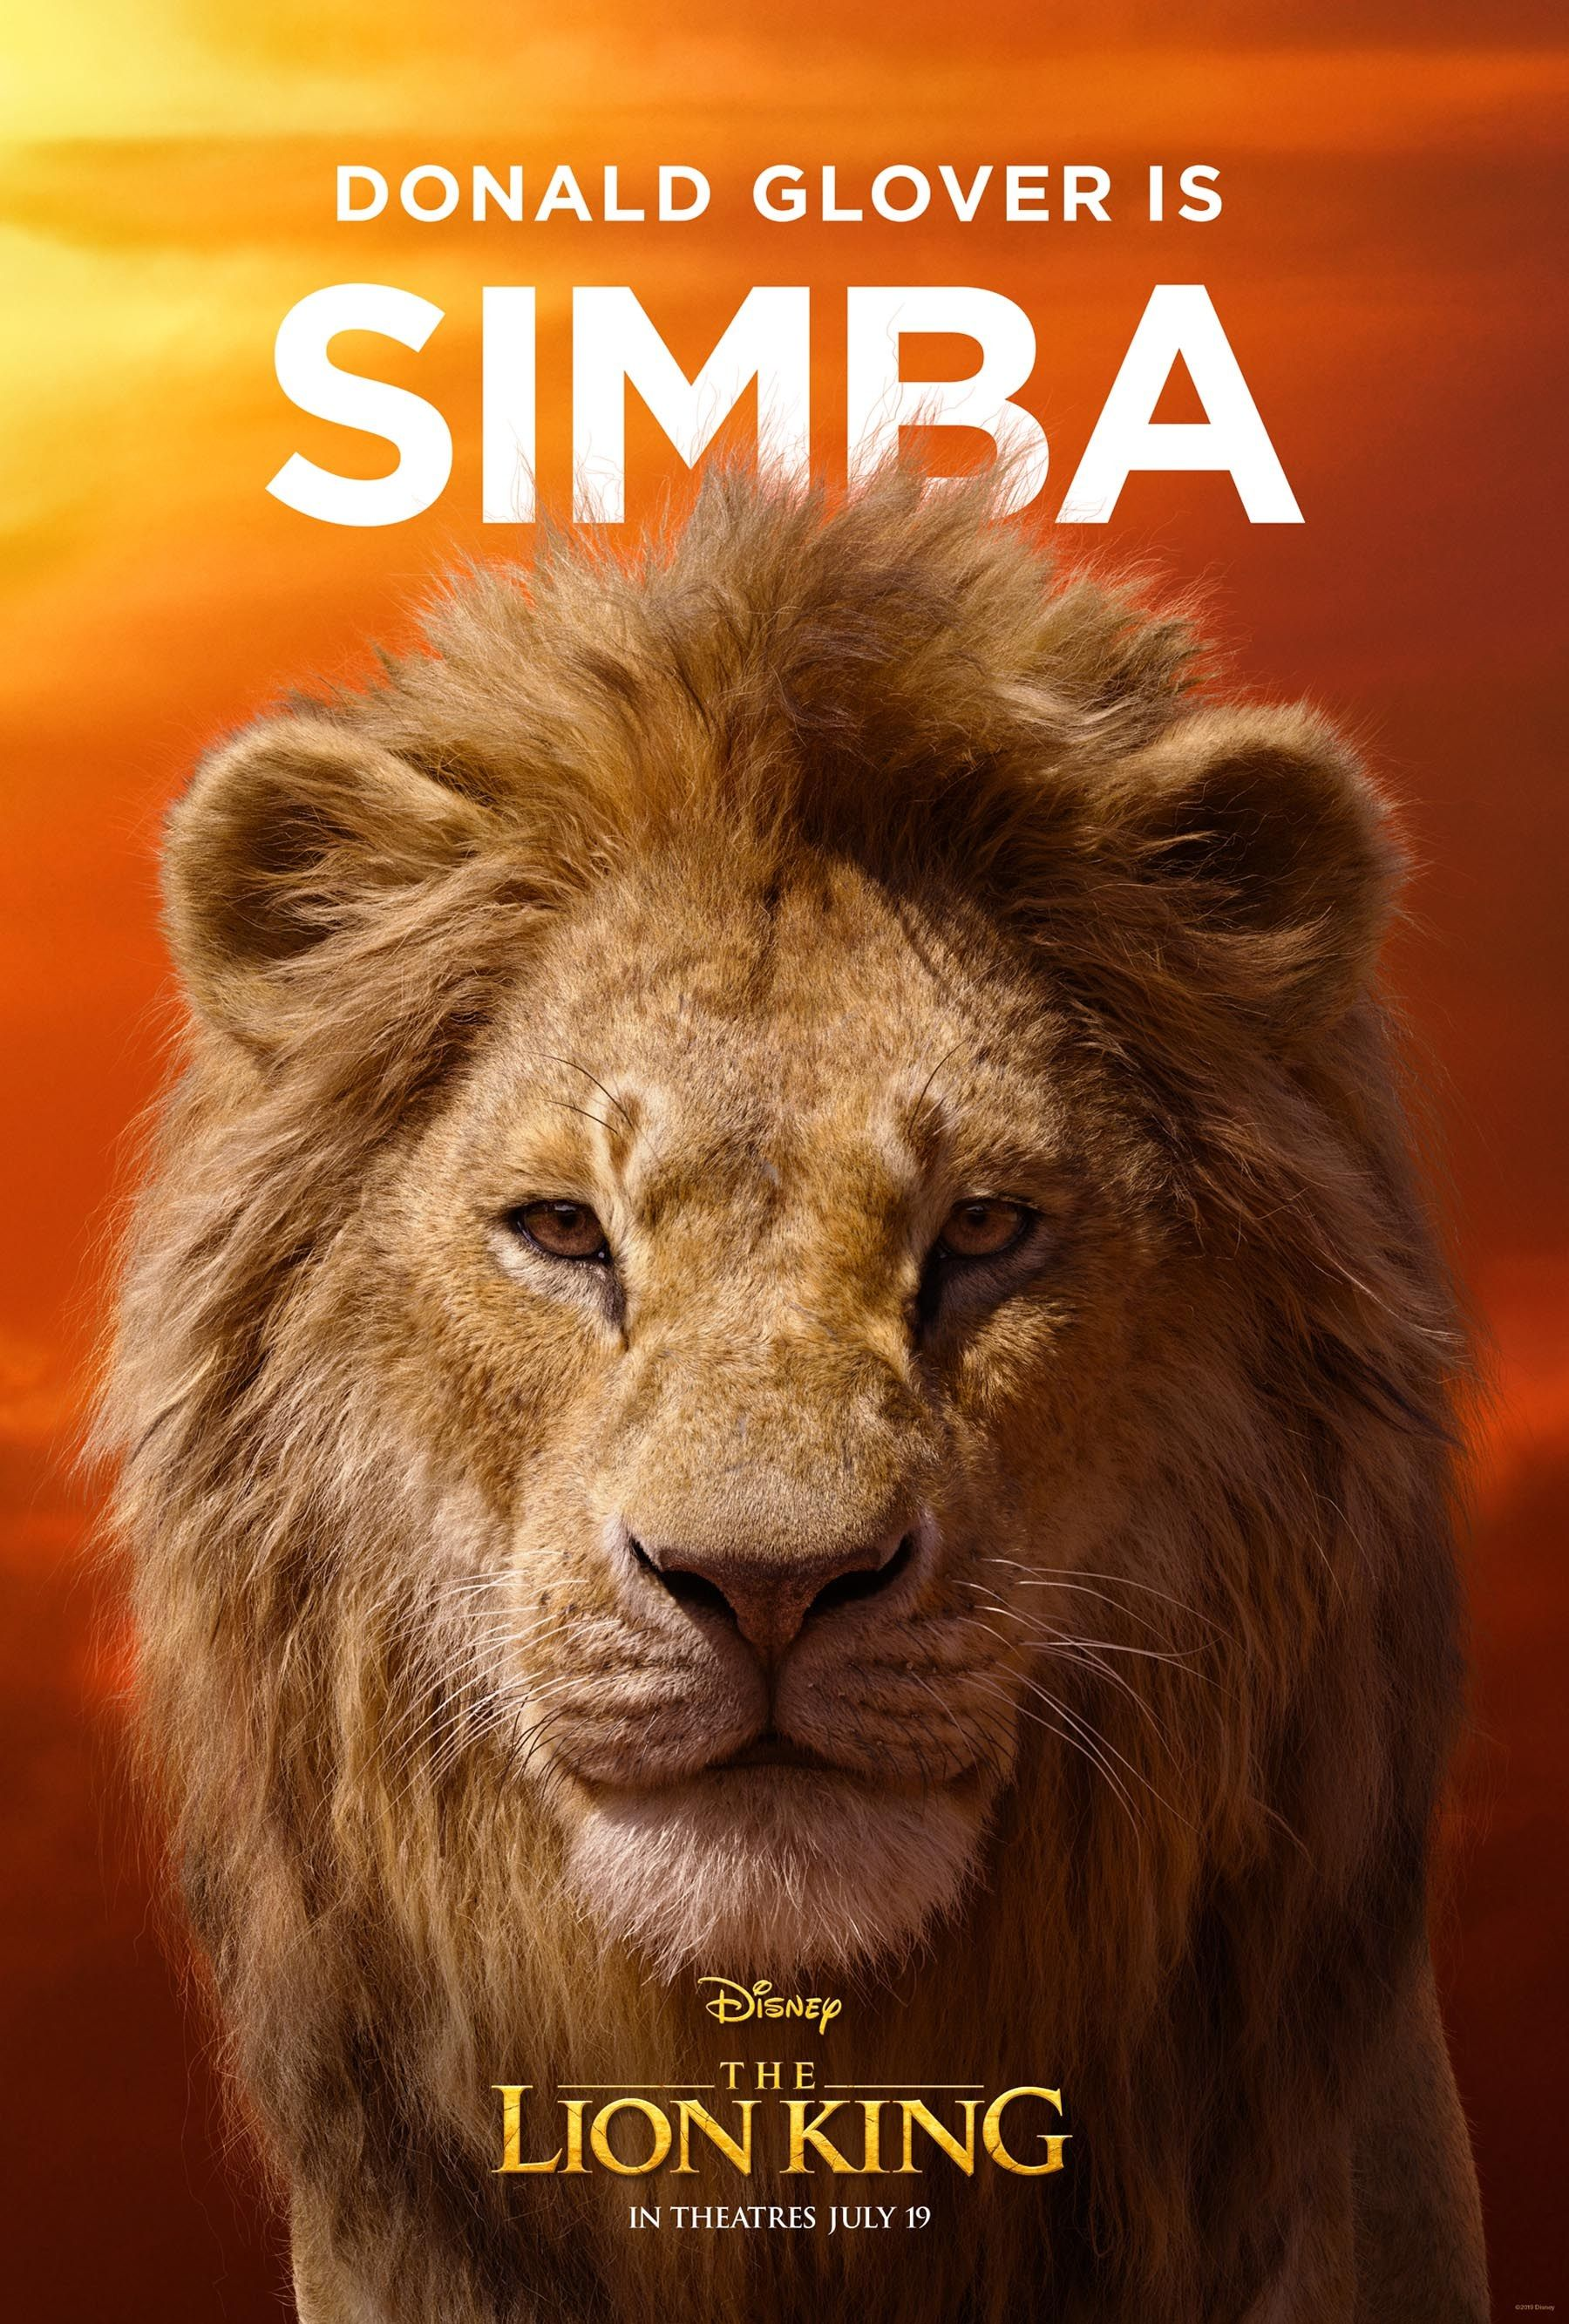 The Lion King Rises See All The Character Posters For The Live Action Film Lion King Movie The Lion King Characters Lion King Poster